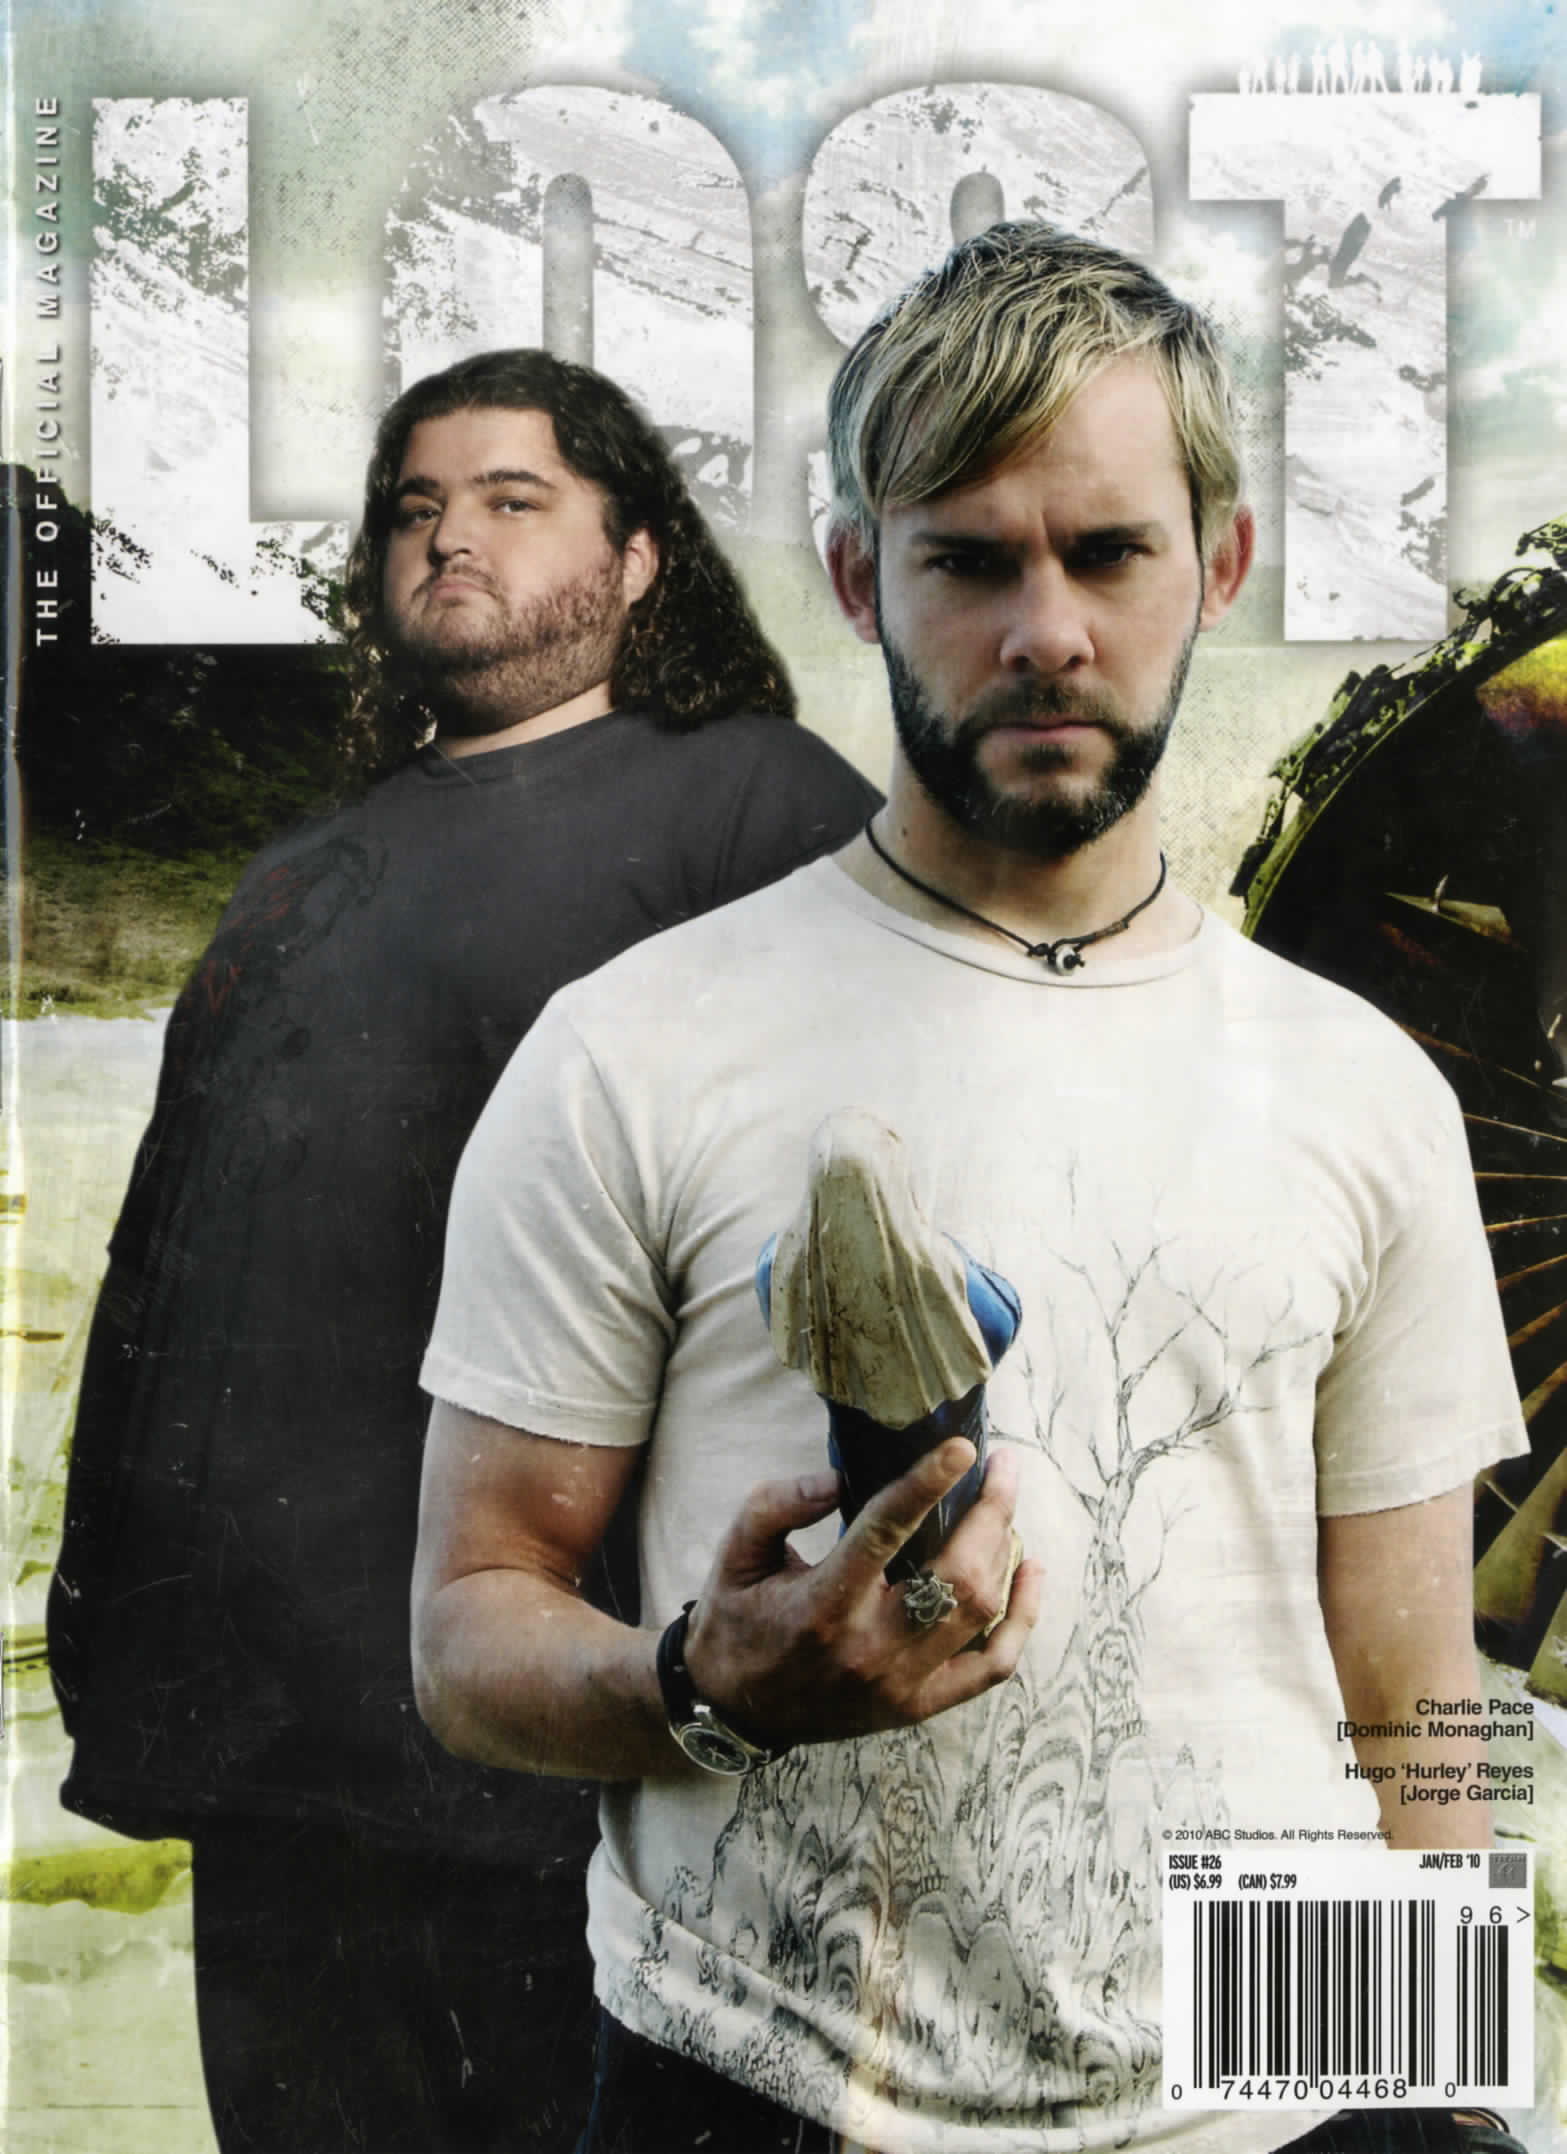 lost the official magazine cover, with hurley and man holding a virgin mary figurine